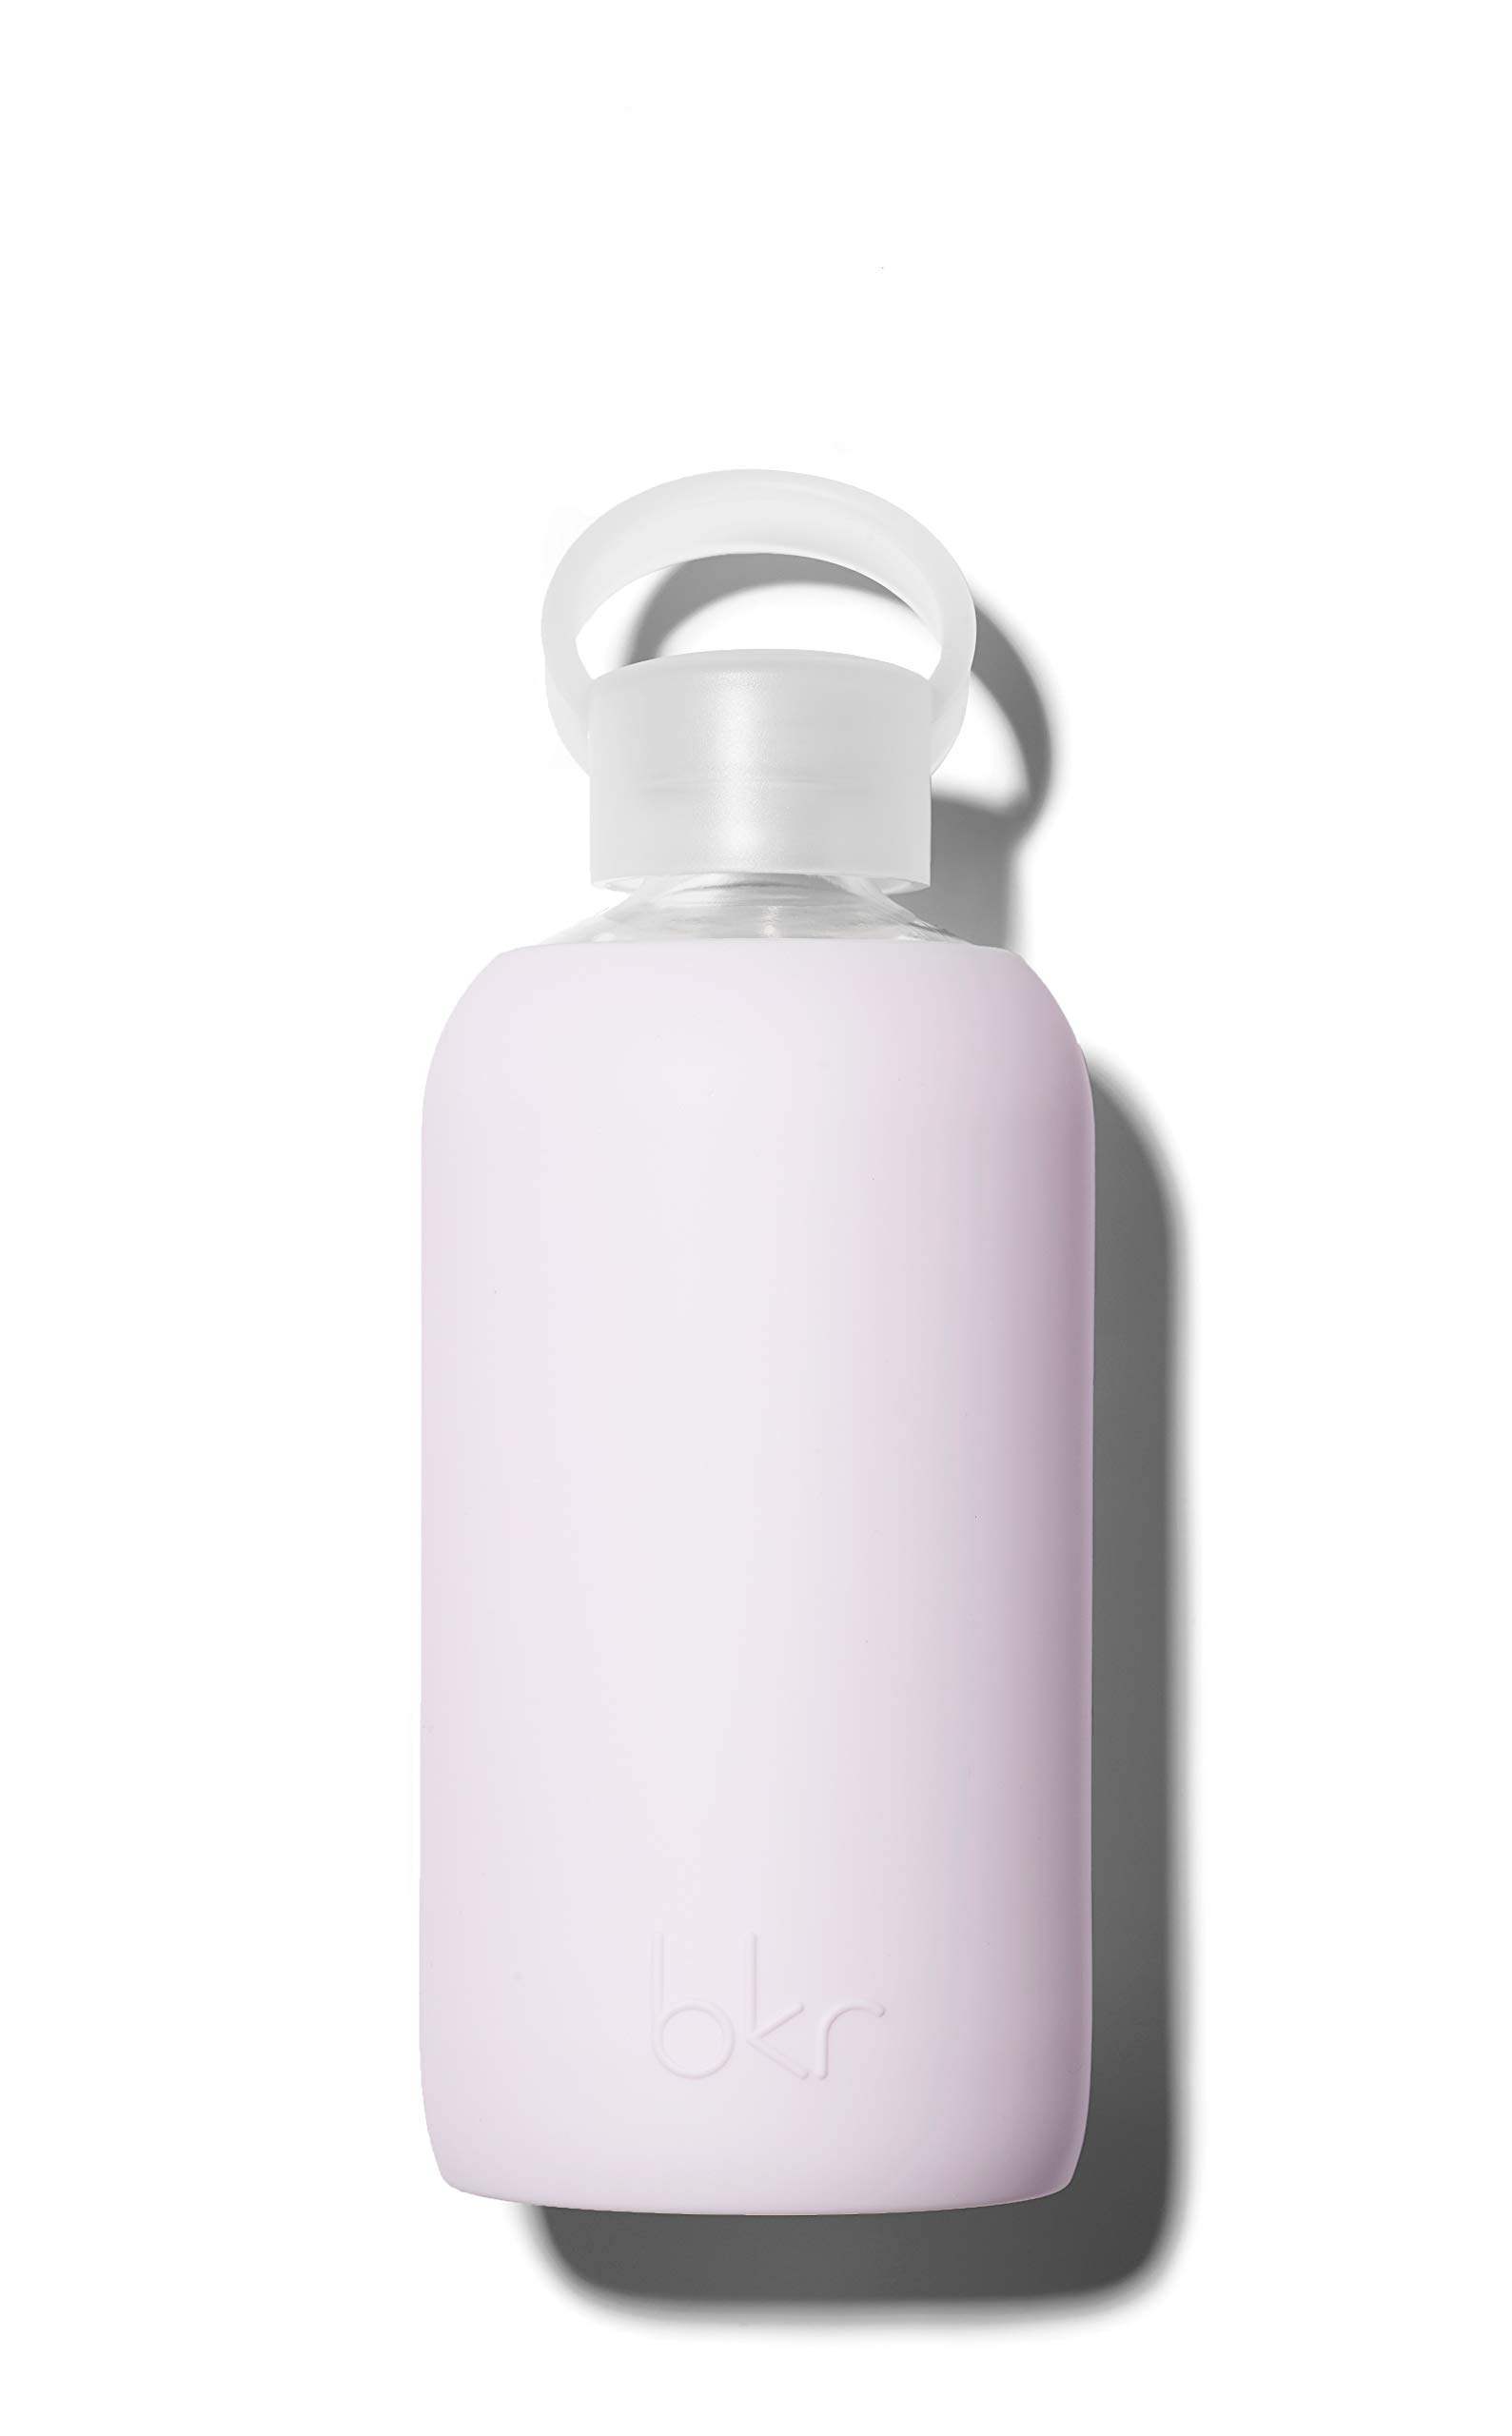 bkr Lala Glass Water Bottle with Smooth Silicone Sleeve for Travel, Narrow Mouth, BPA-Free & Dishwasher Safe, Opaque Lavender Fog, 16 oz / 500 mL by bkr (Image #1)